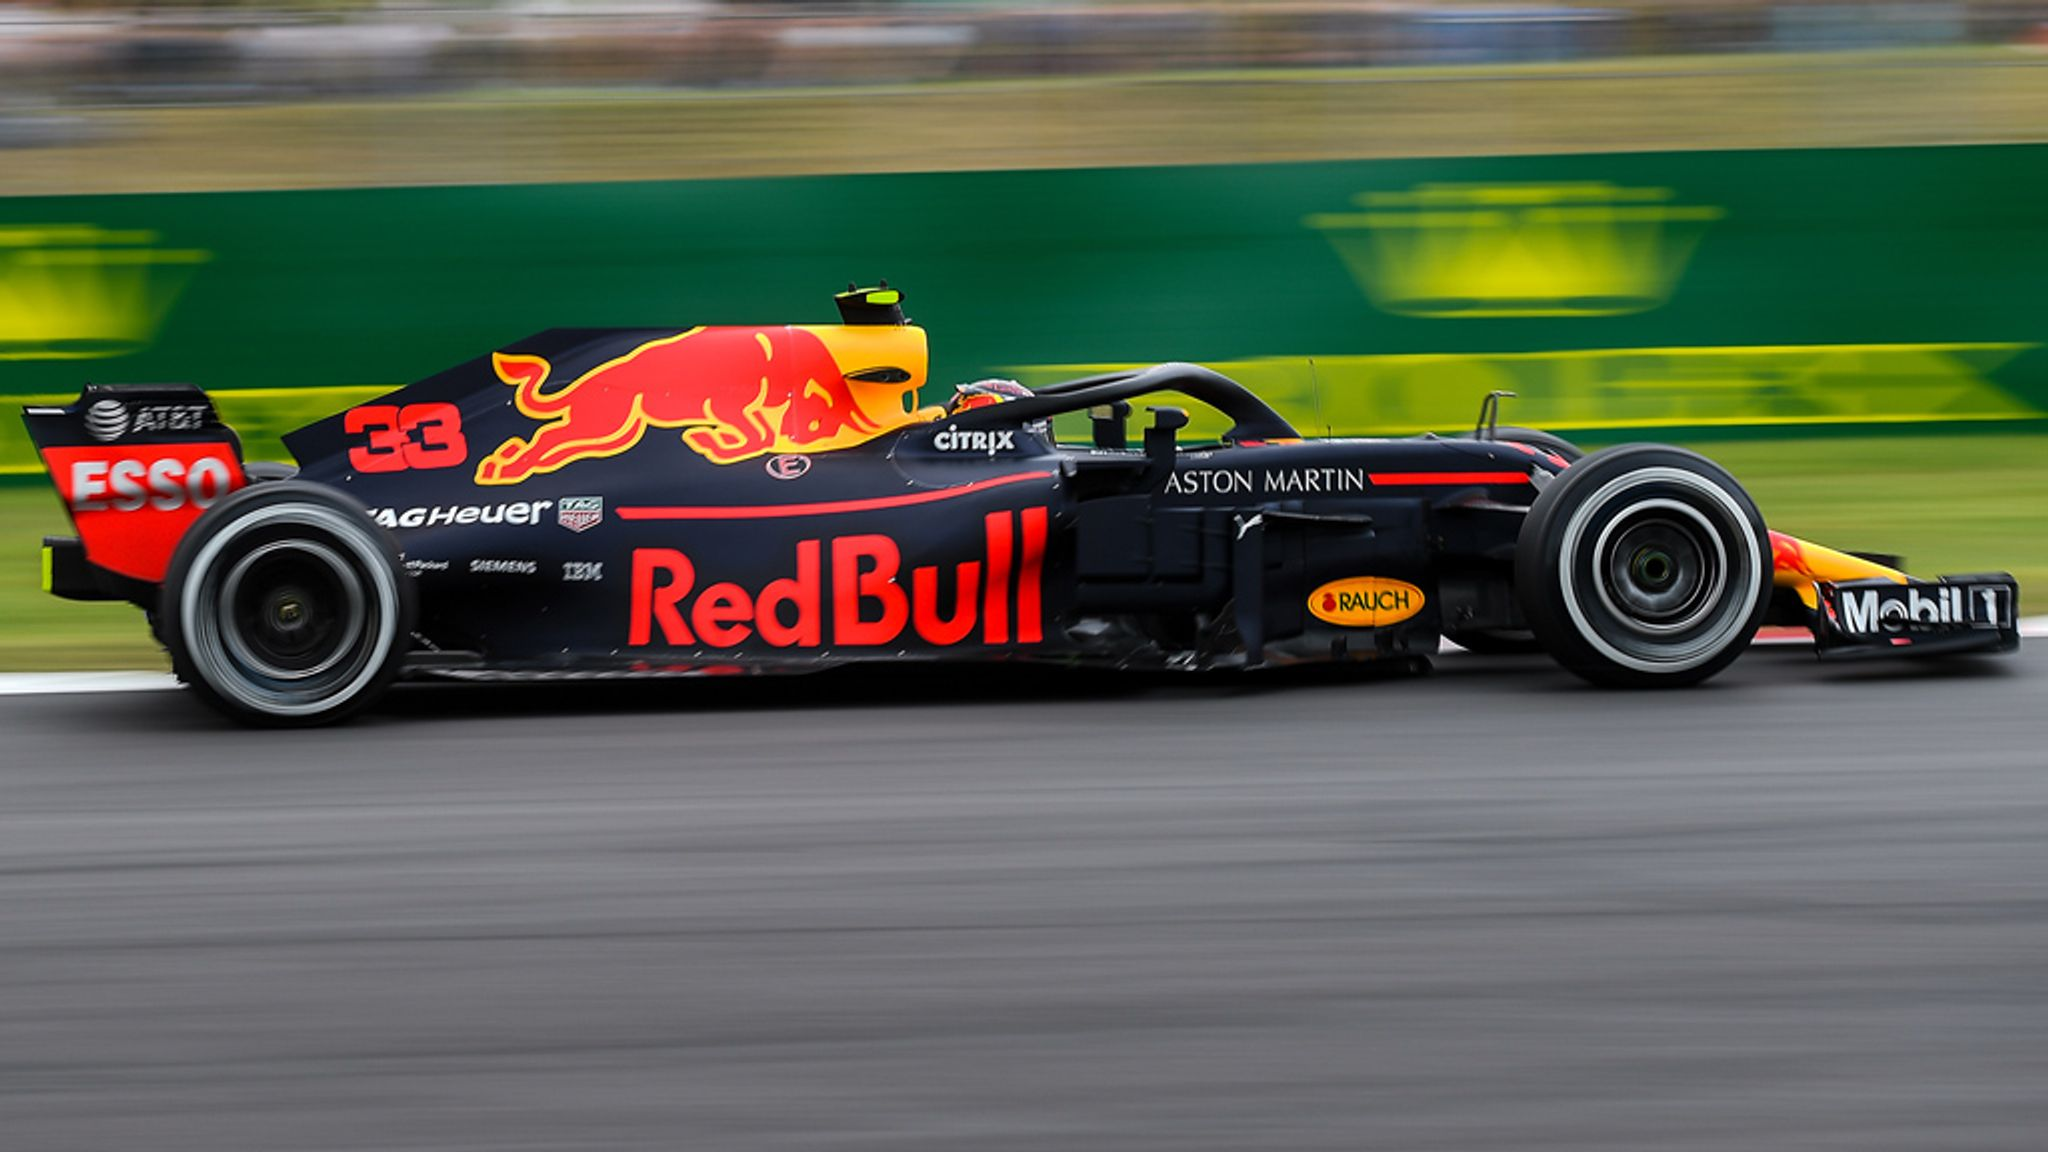 F1 2018: Why have Red Bull switched to Honda? | F1 News